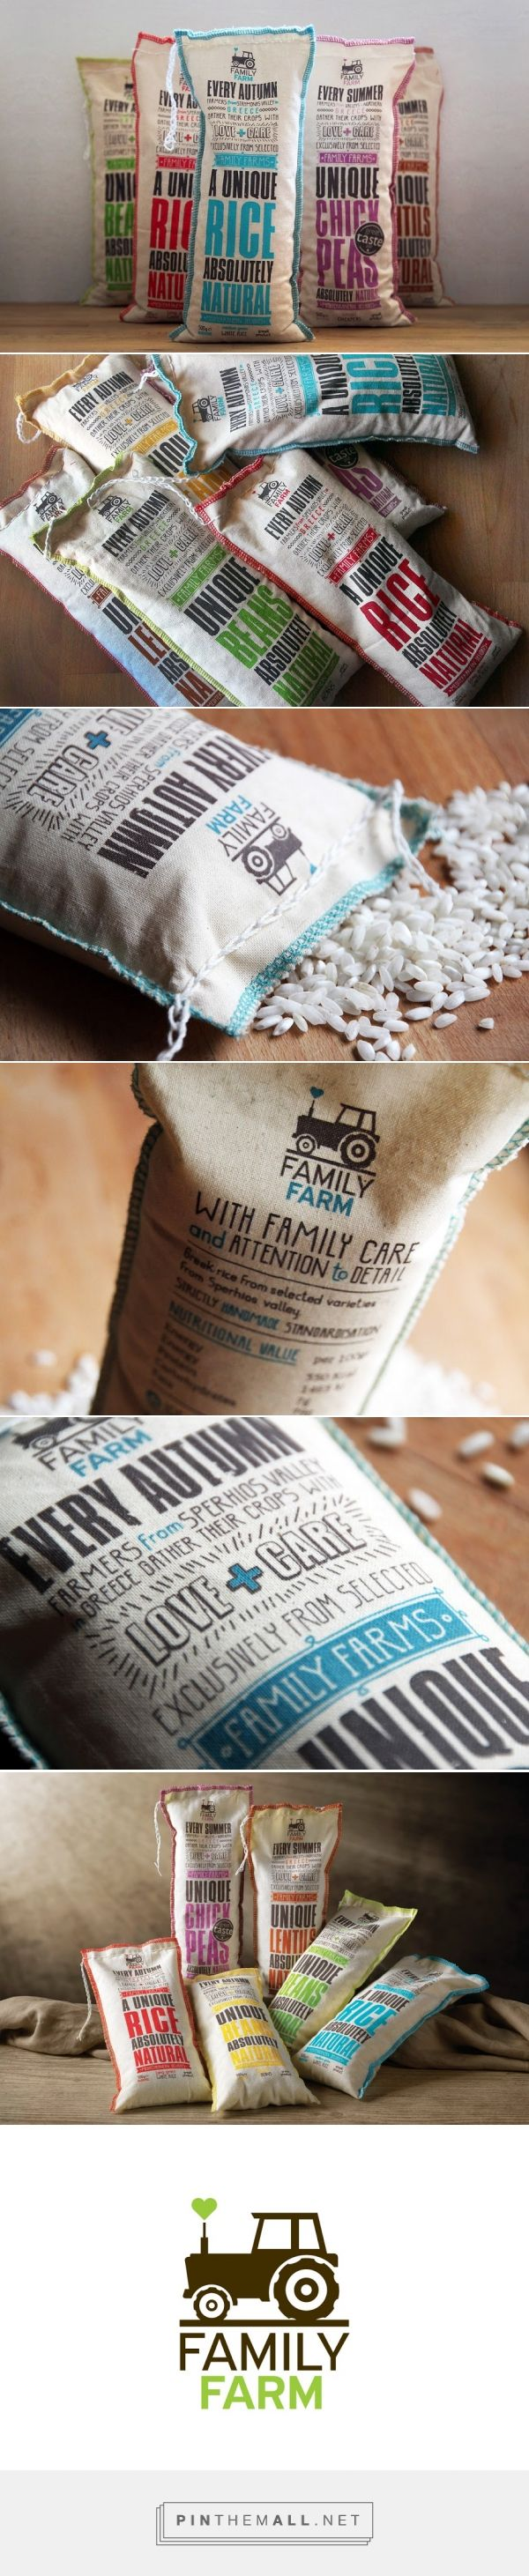 Family Farm agricultural products packaging design by Susami (Greece) - http://www.packagingoftheworld.com/2016/05/family-farm.html